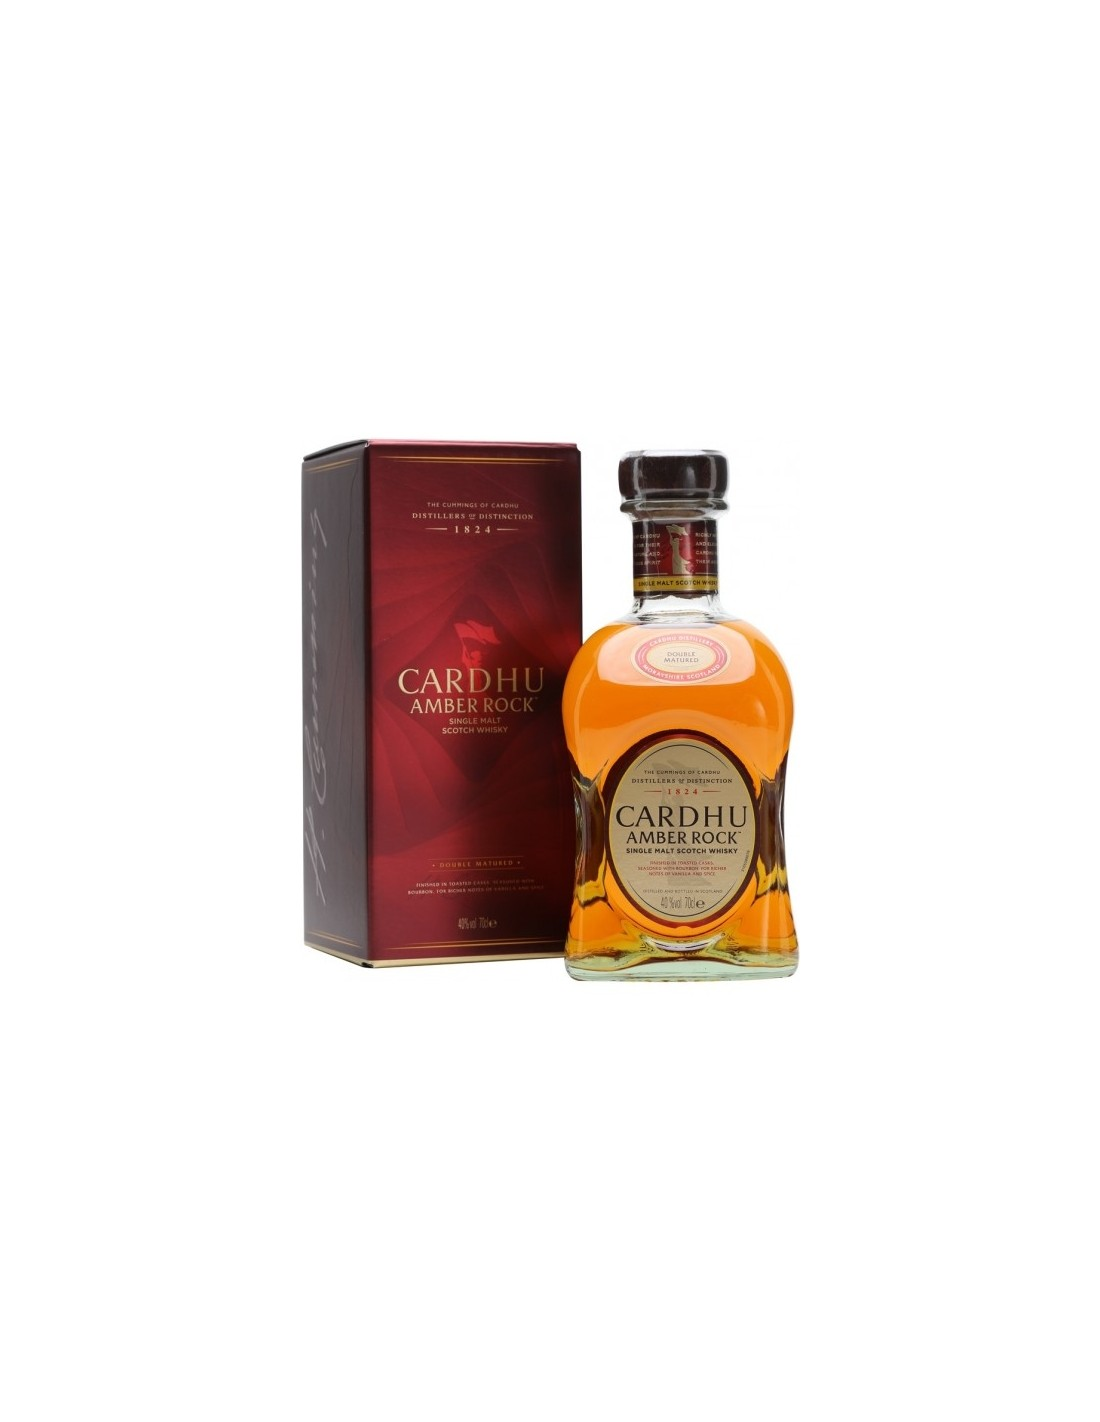 Whisky Single Malt Cardhu Amber Rock, 40% alc., 0.7L, Scotia